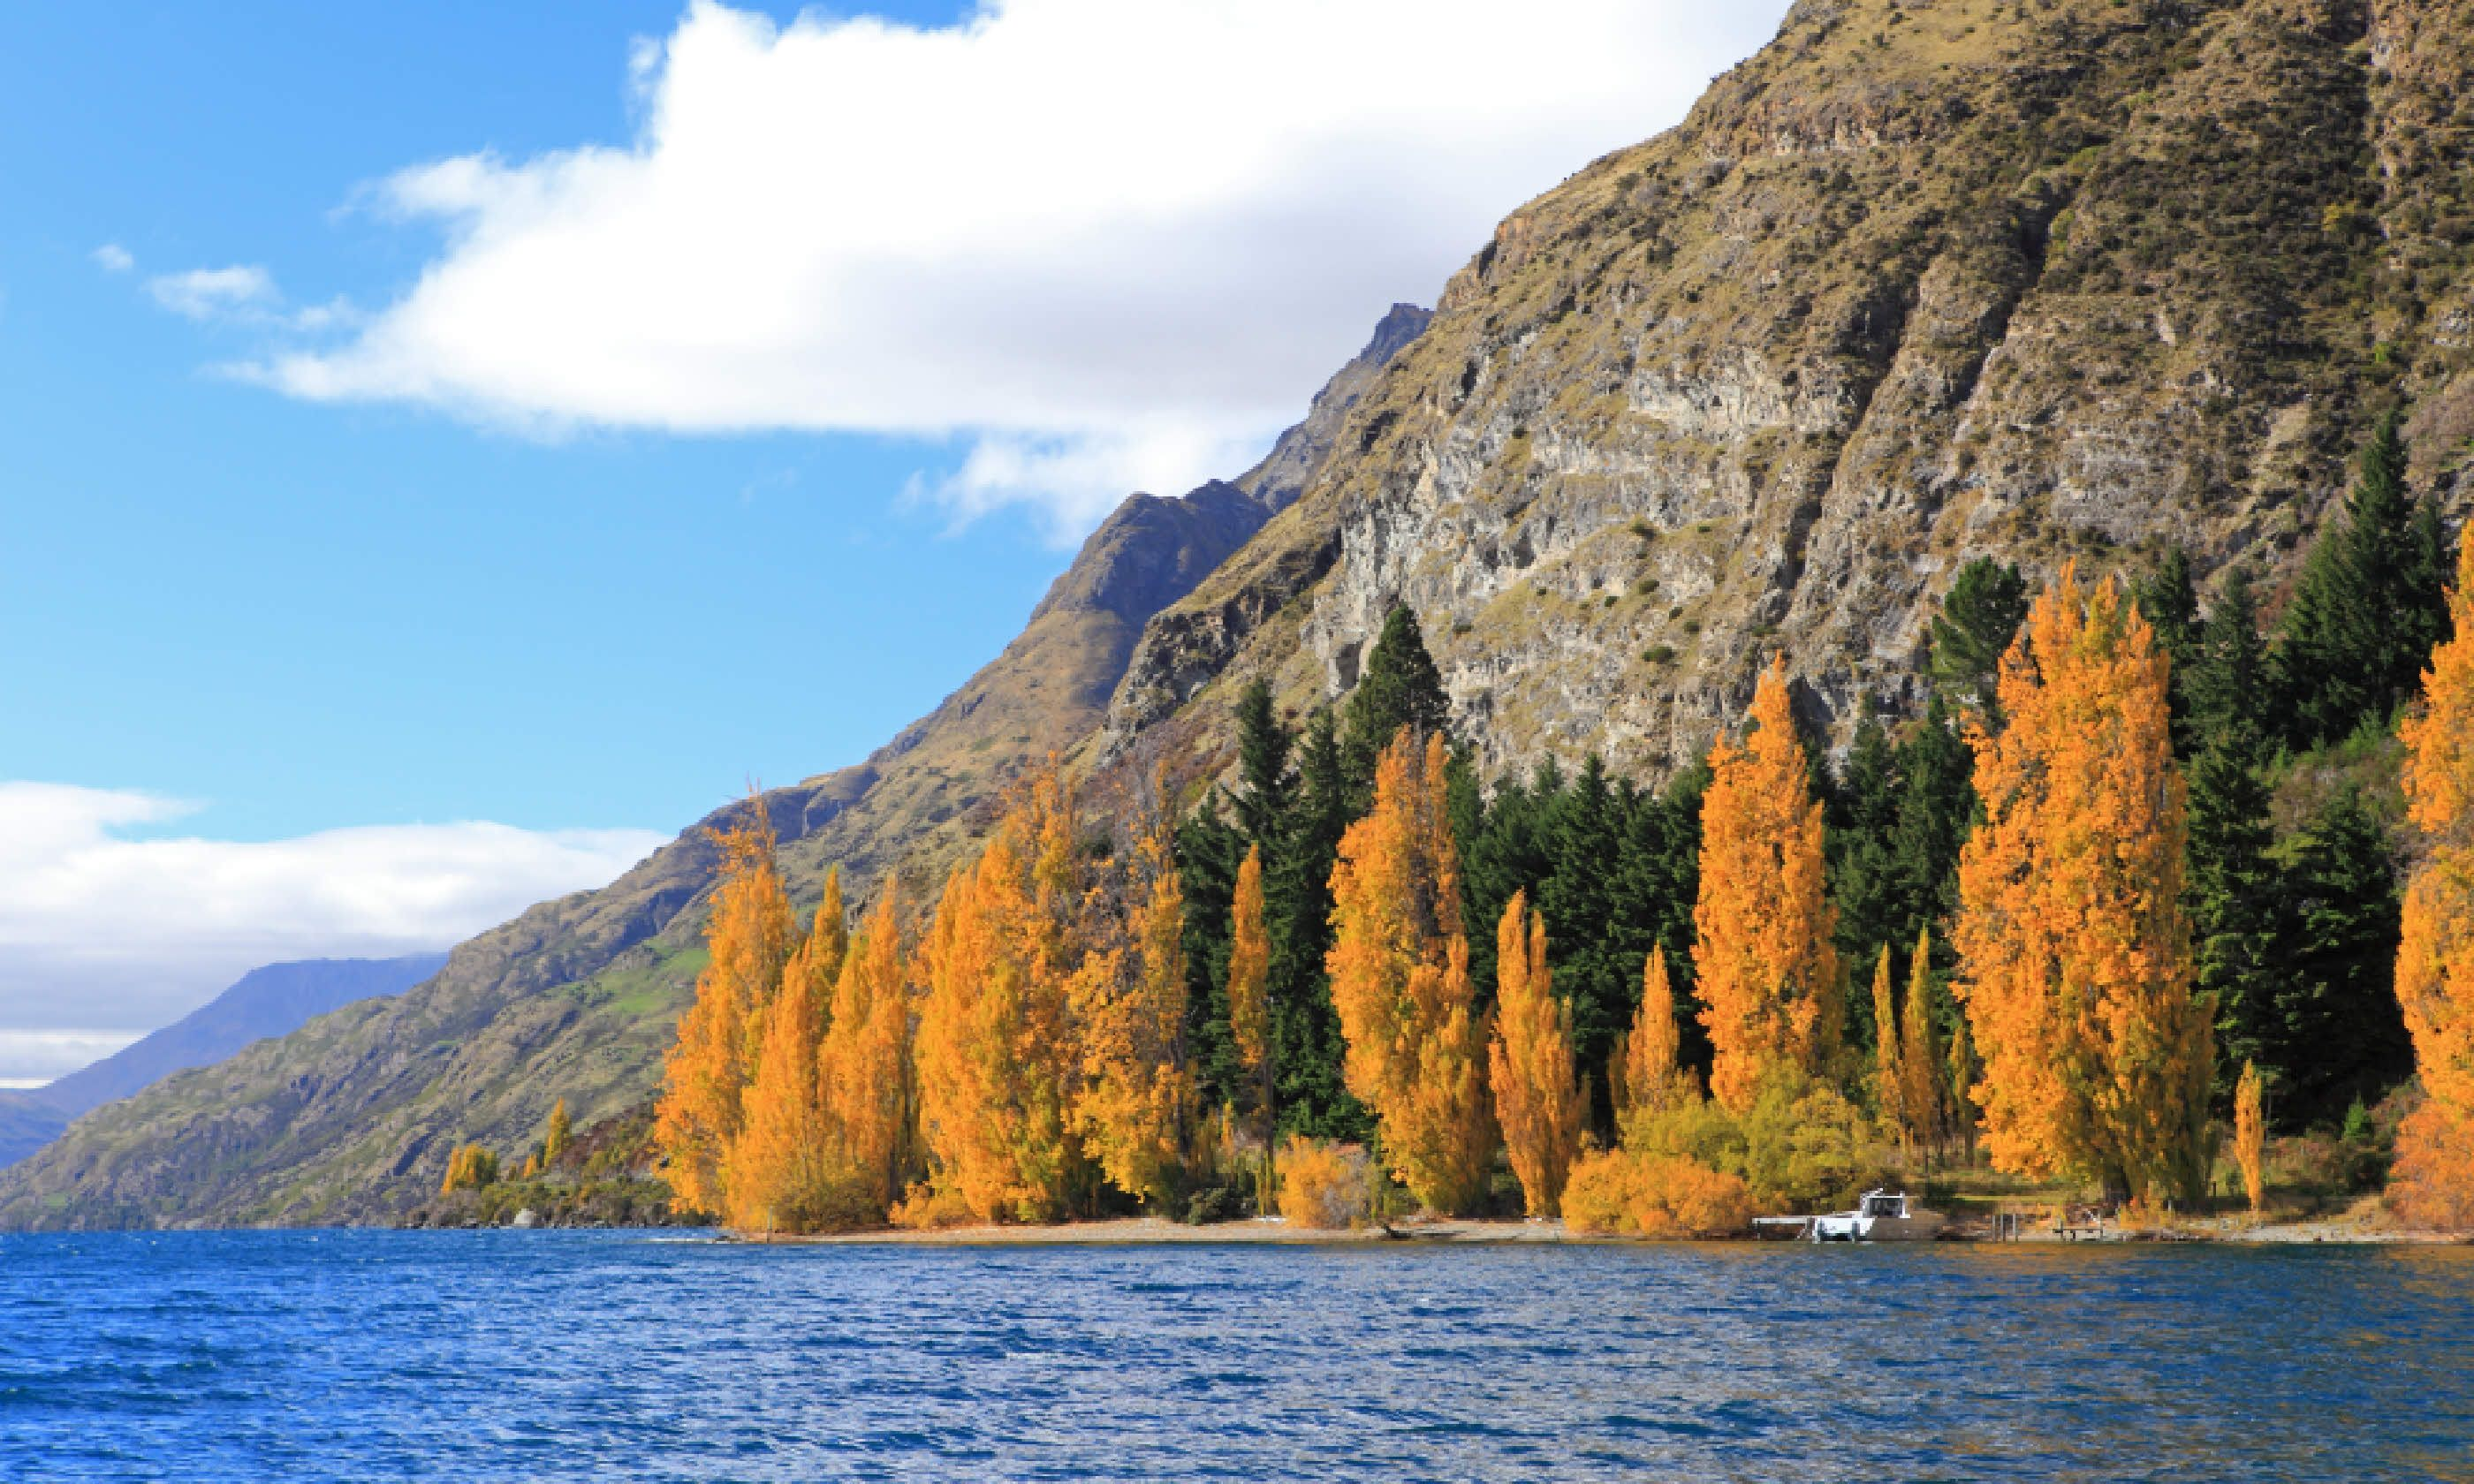 Autumn scenery at the Wakatipu lake, Queenstown (Shutterstock)